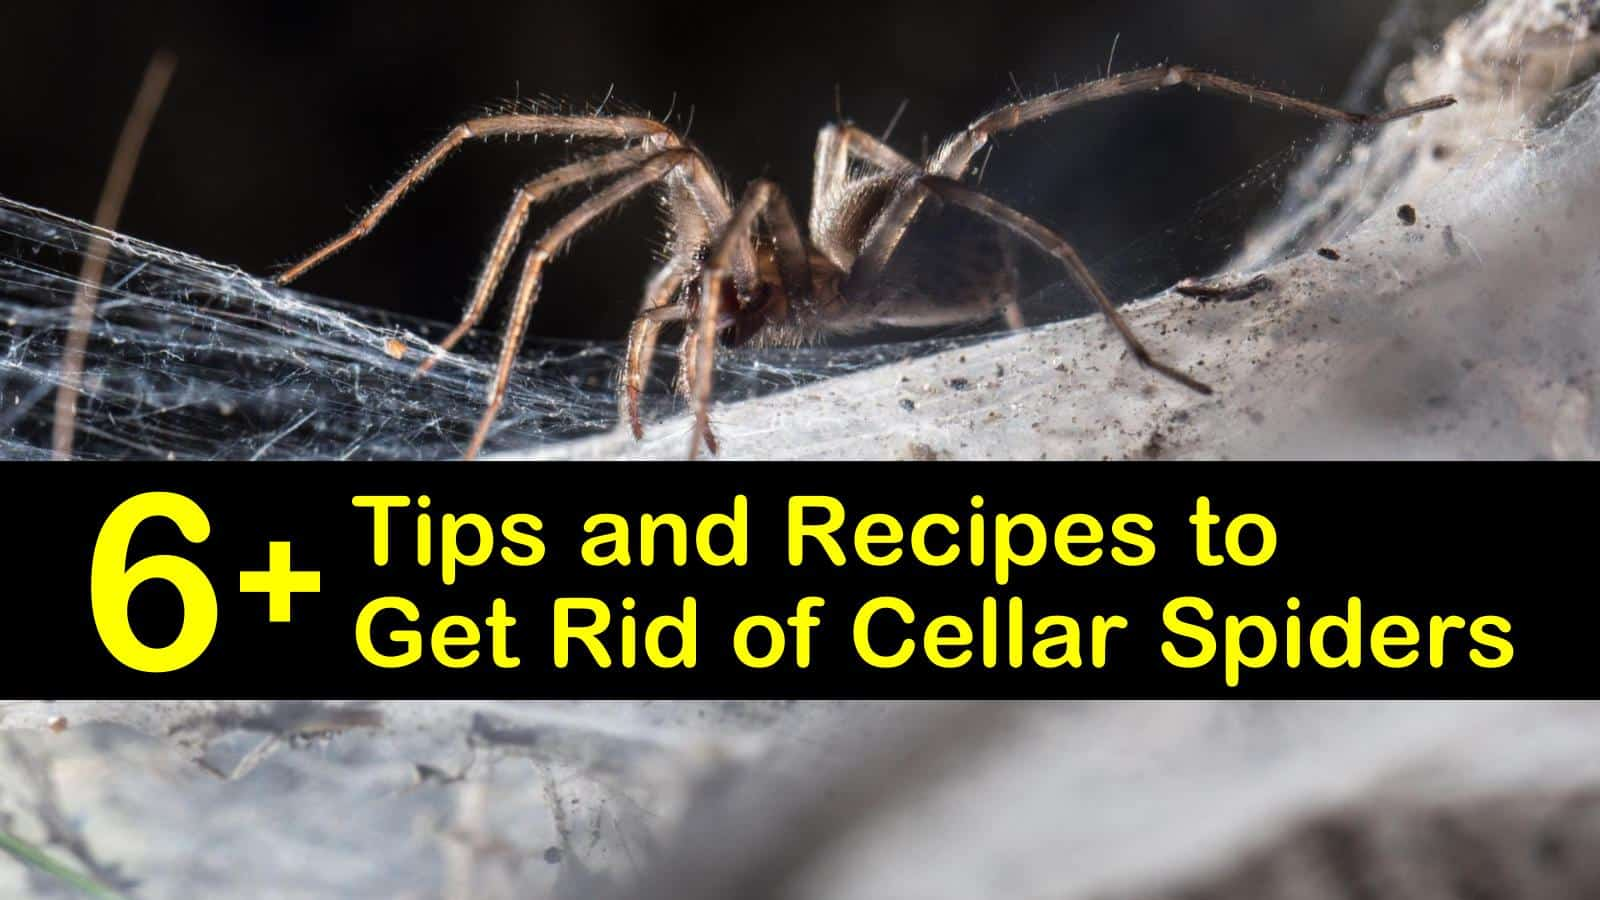 how to get rid of cellar spiders titleimg1